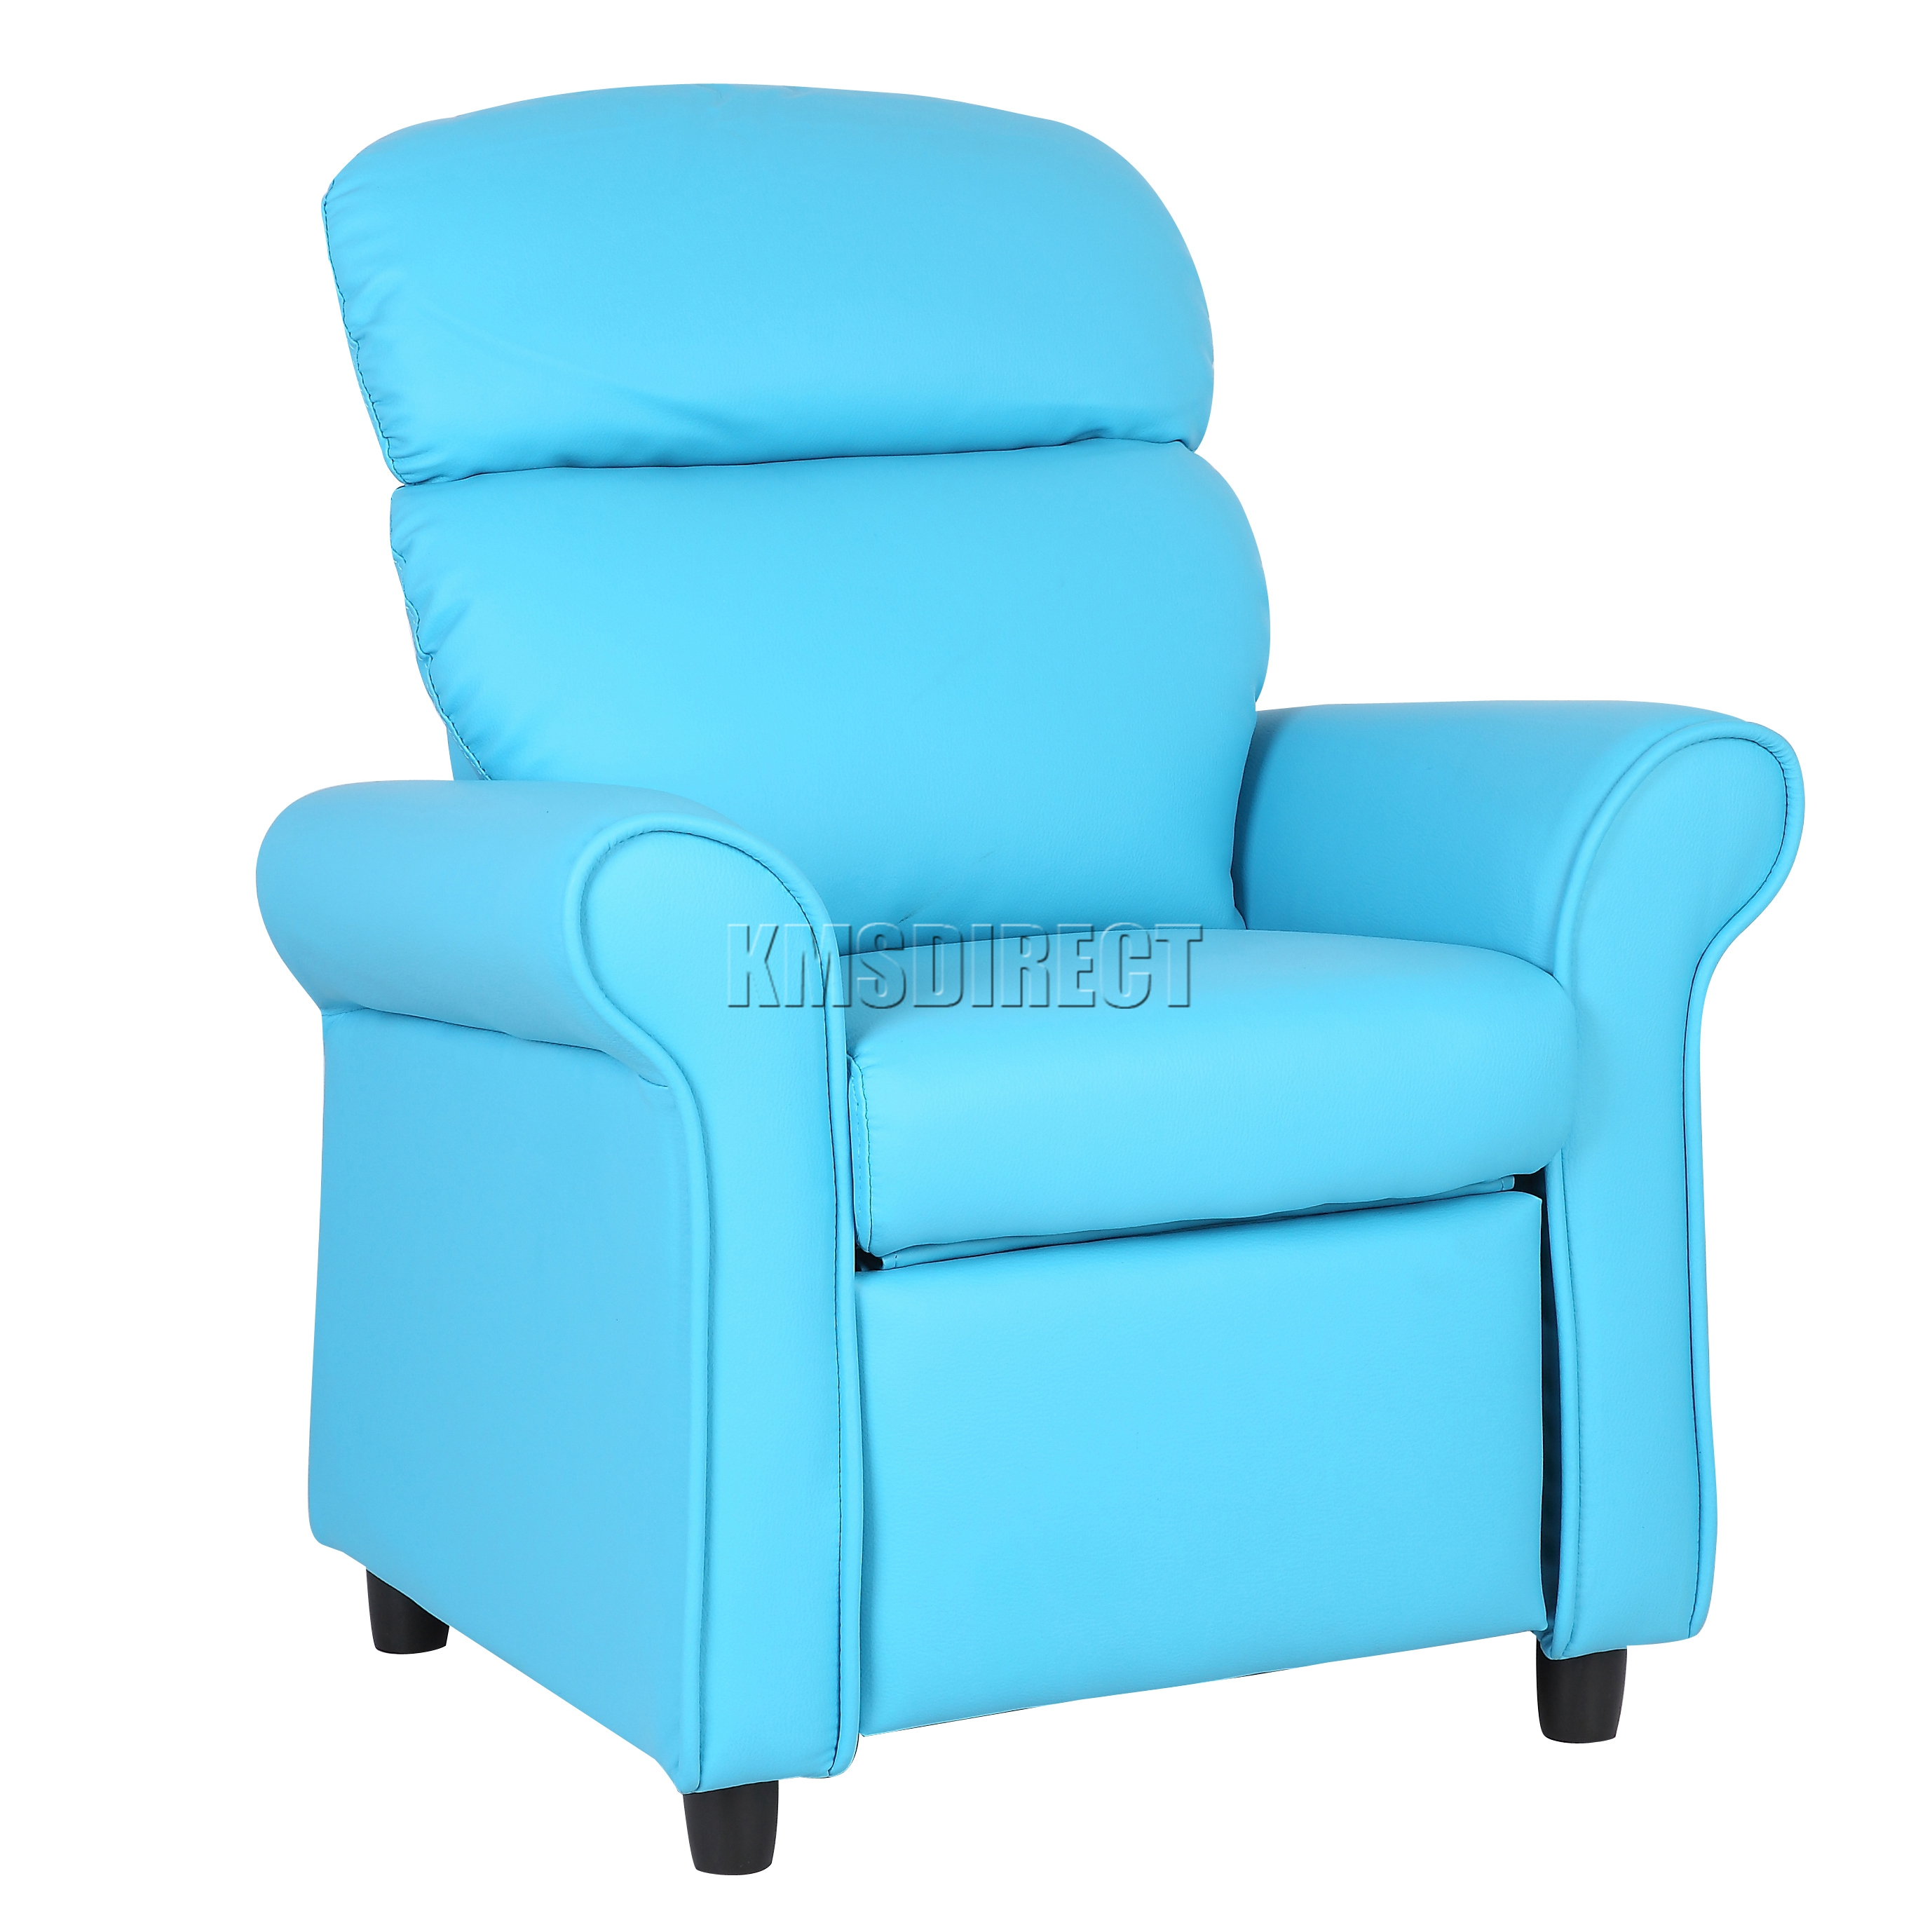 best toddler chair outdoor lounge with ottoman kids recliner sofa 241 images on pinterest